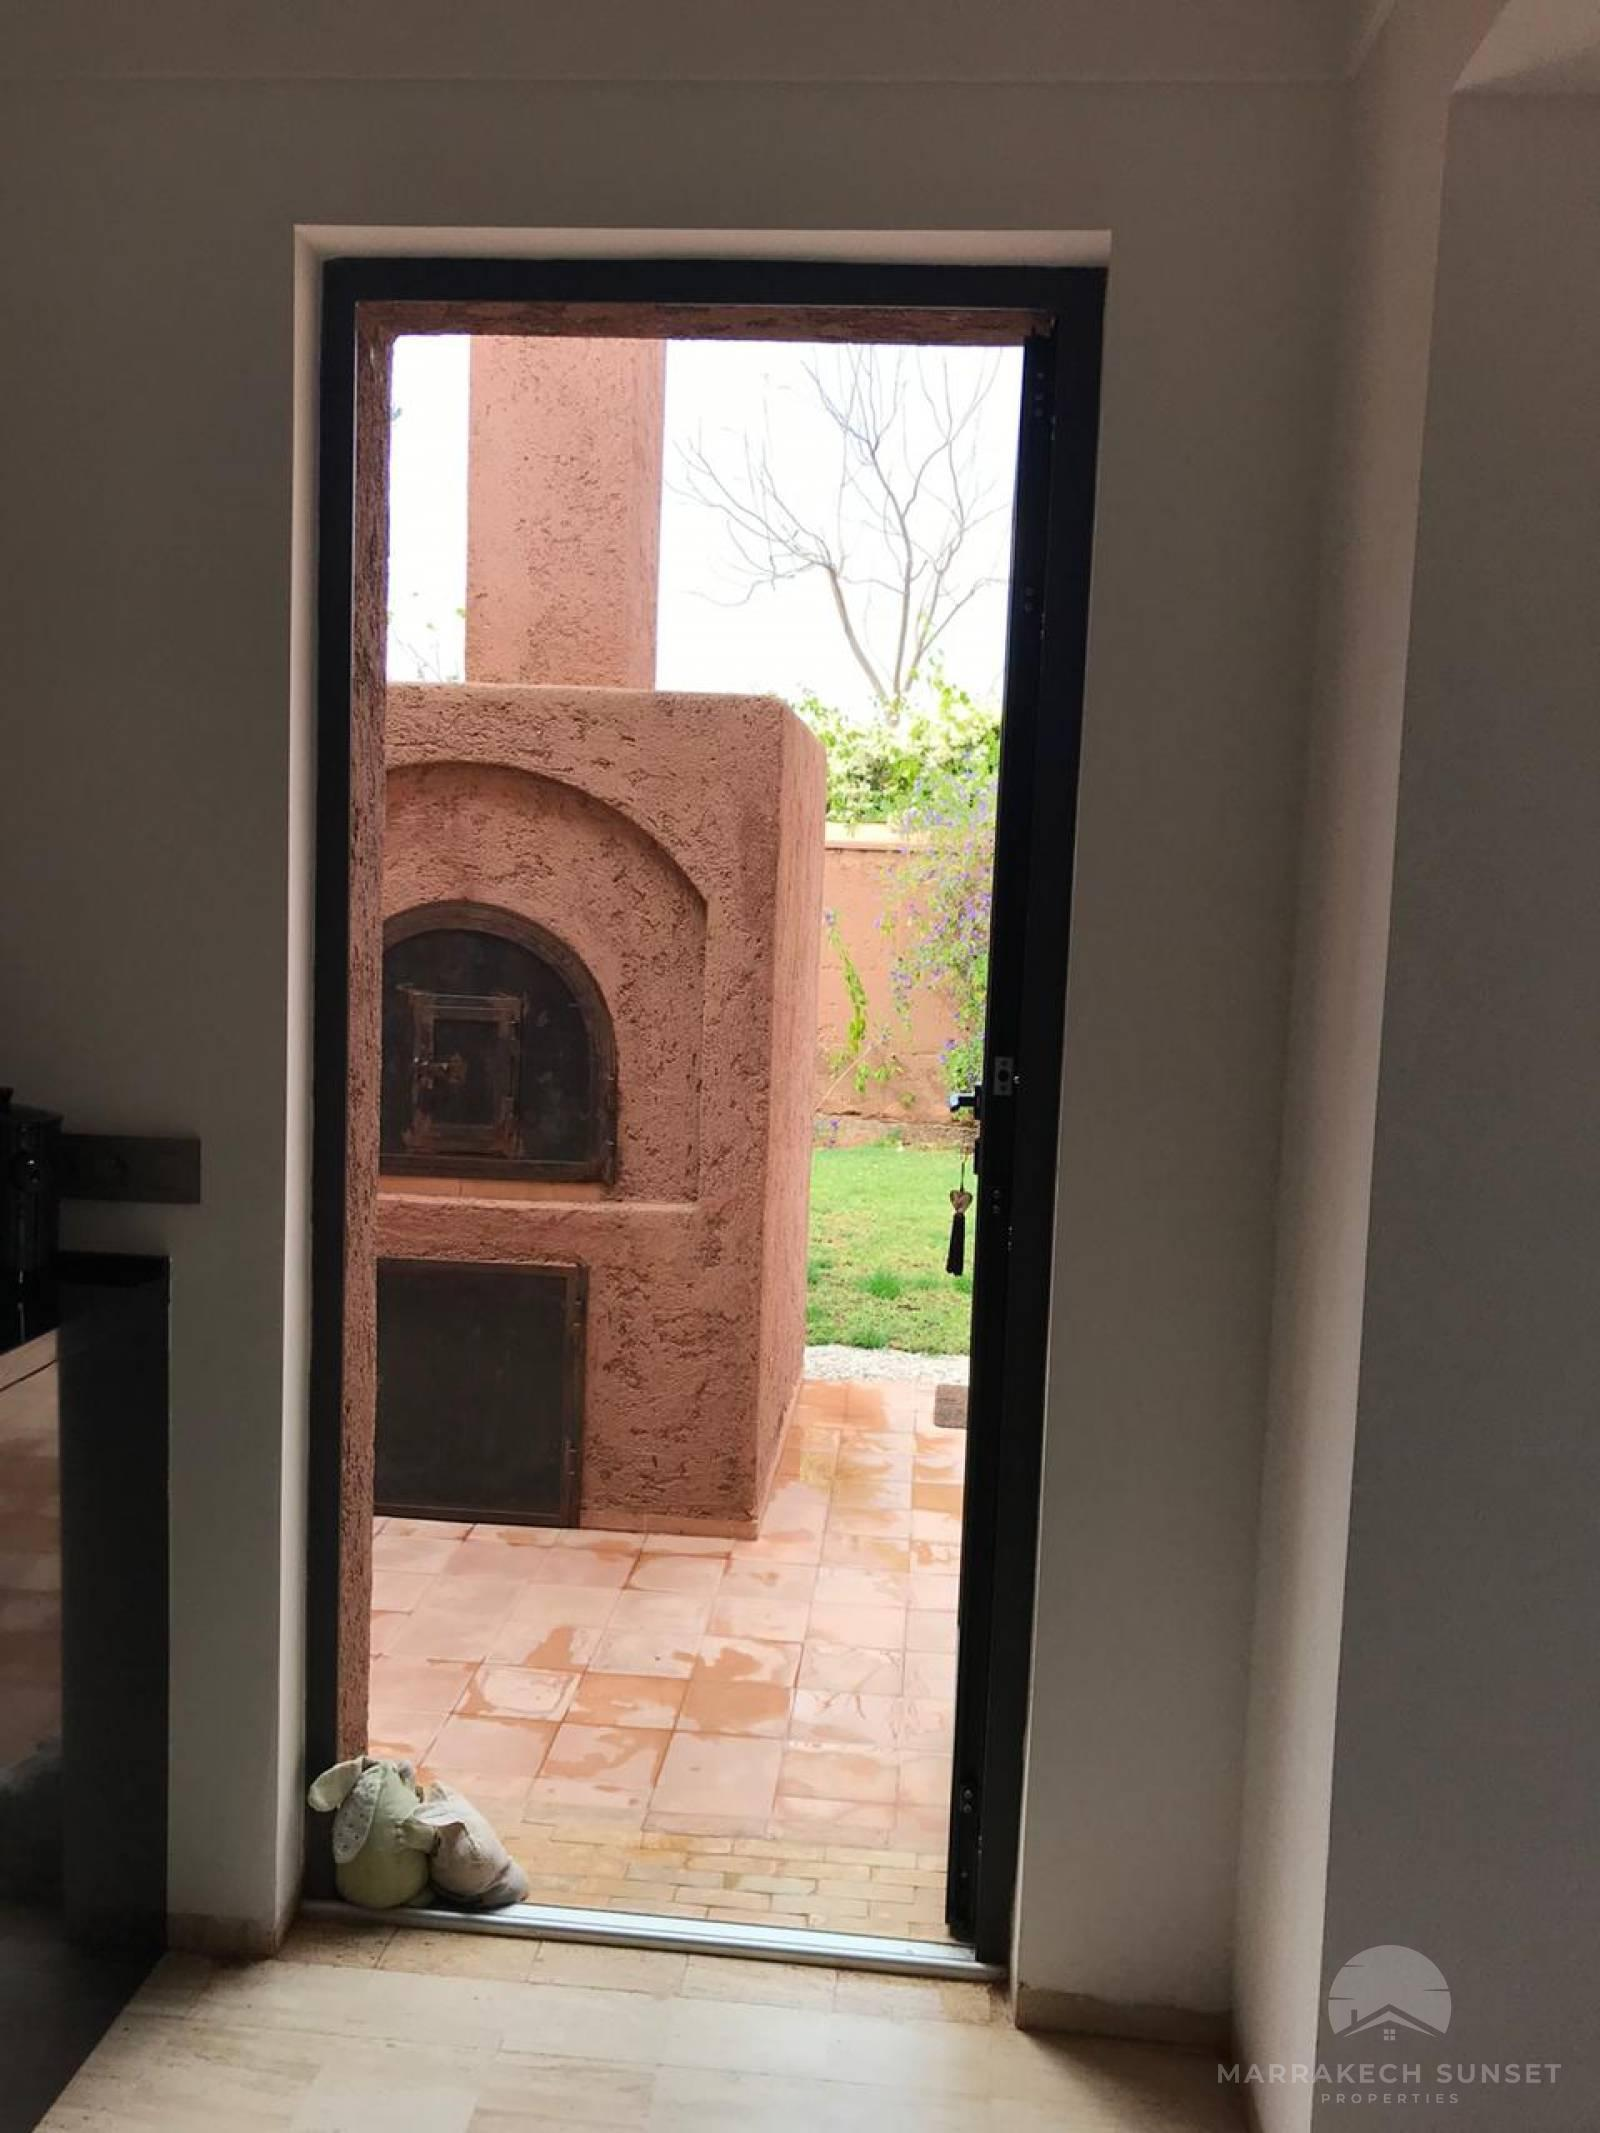 Luxury Villa for sale Marrakech in one of the most prestigious residential & golf complex in Marrakech